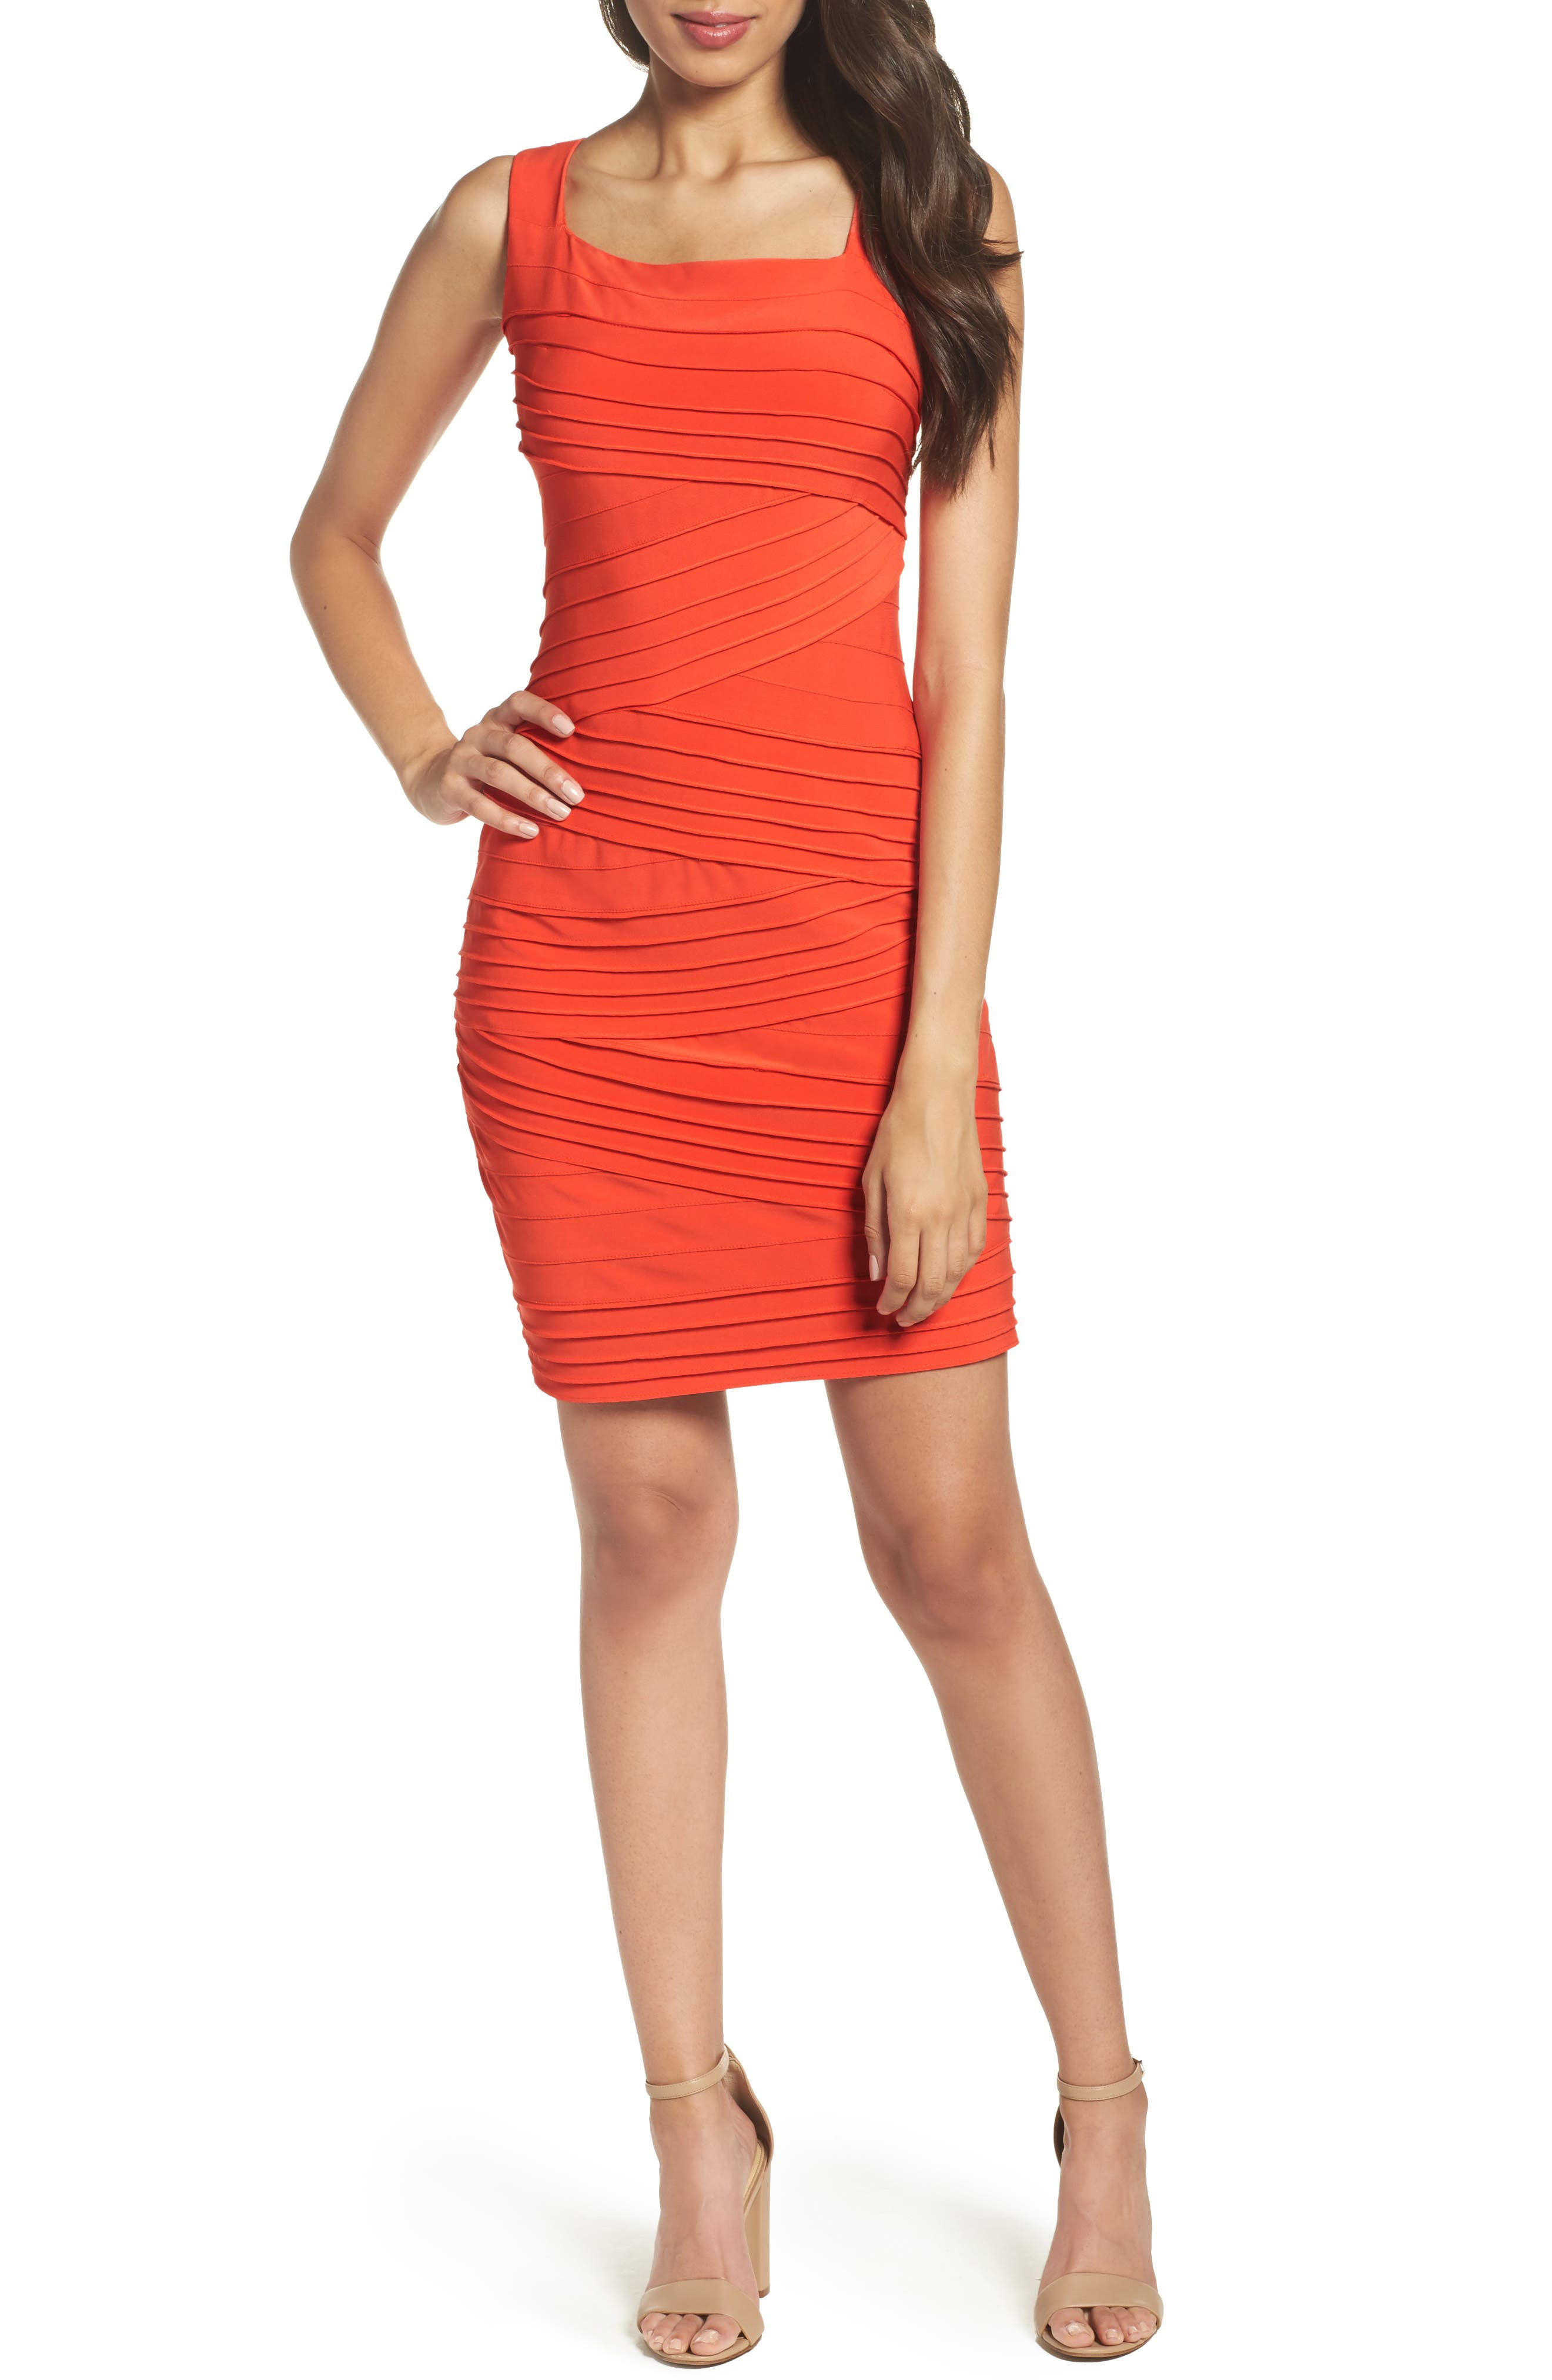 Alternate Image 1 Selected - Adrianna Papell Banded Body-Con Dress